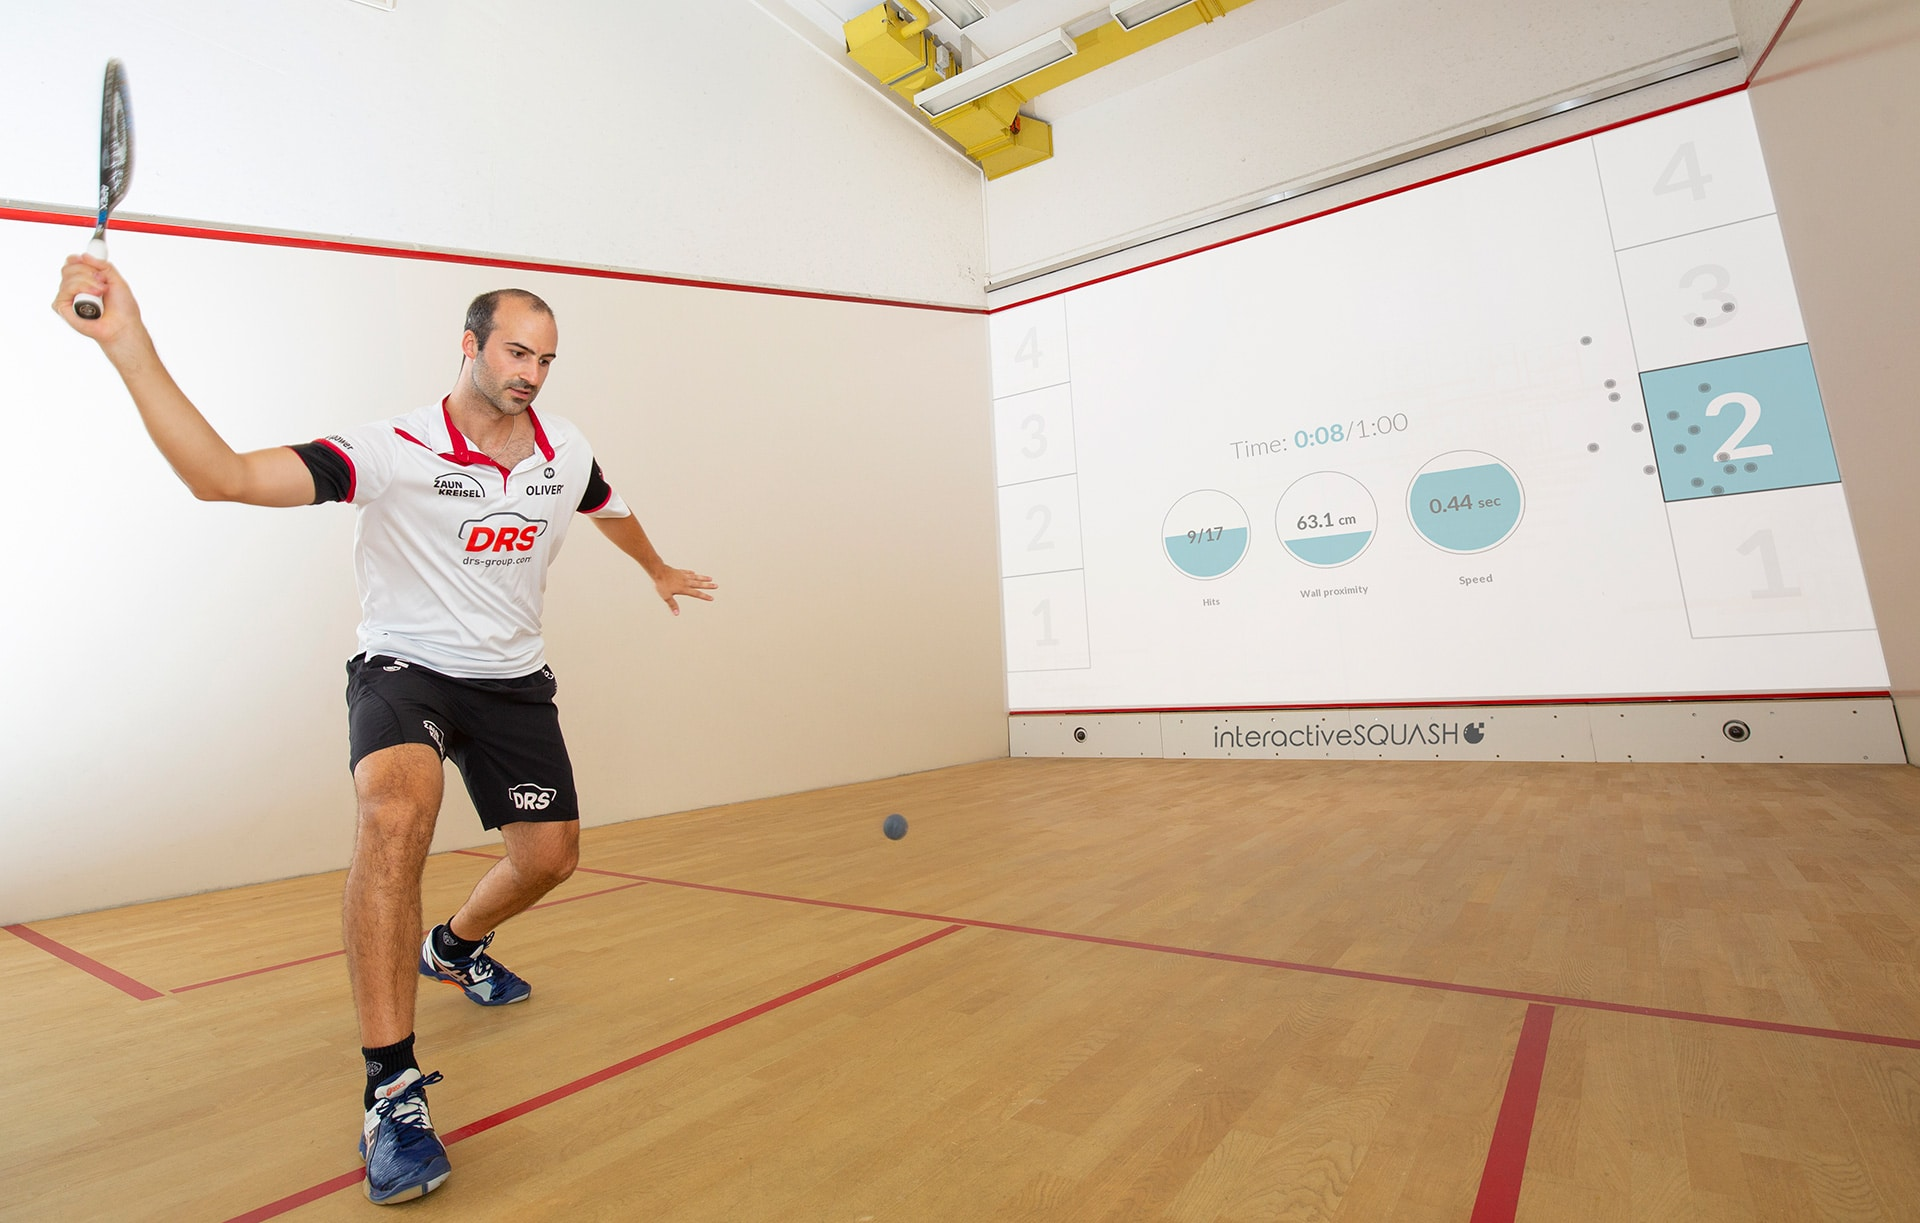 interactiveSQUASH is available with CourtTech now!